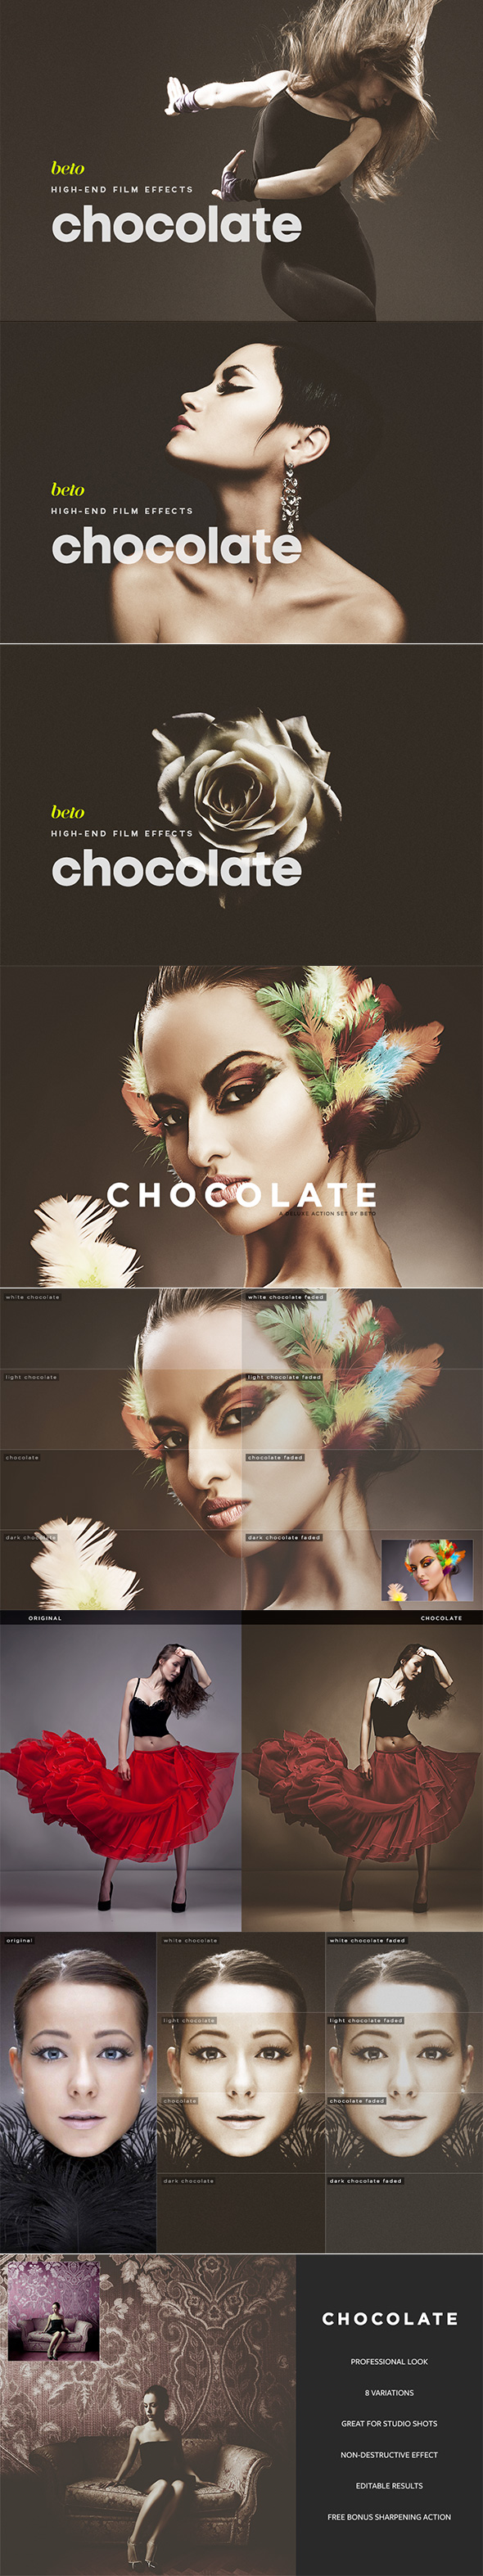 Chocolate Action - Photo Effects Actions